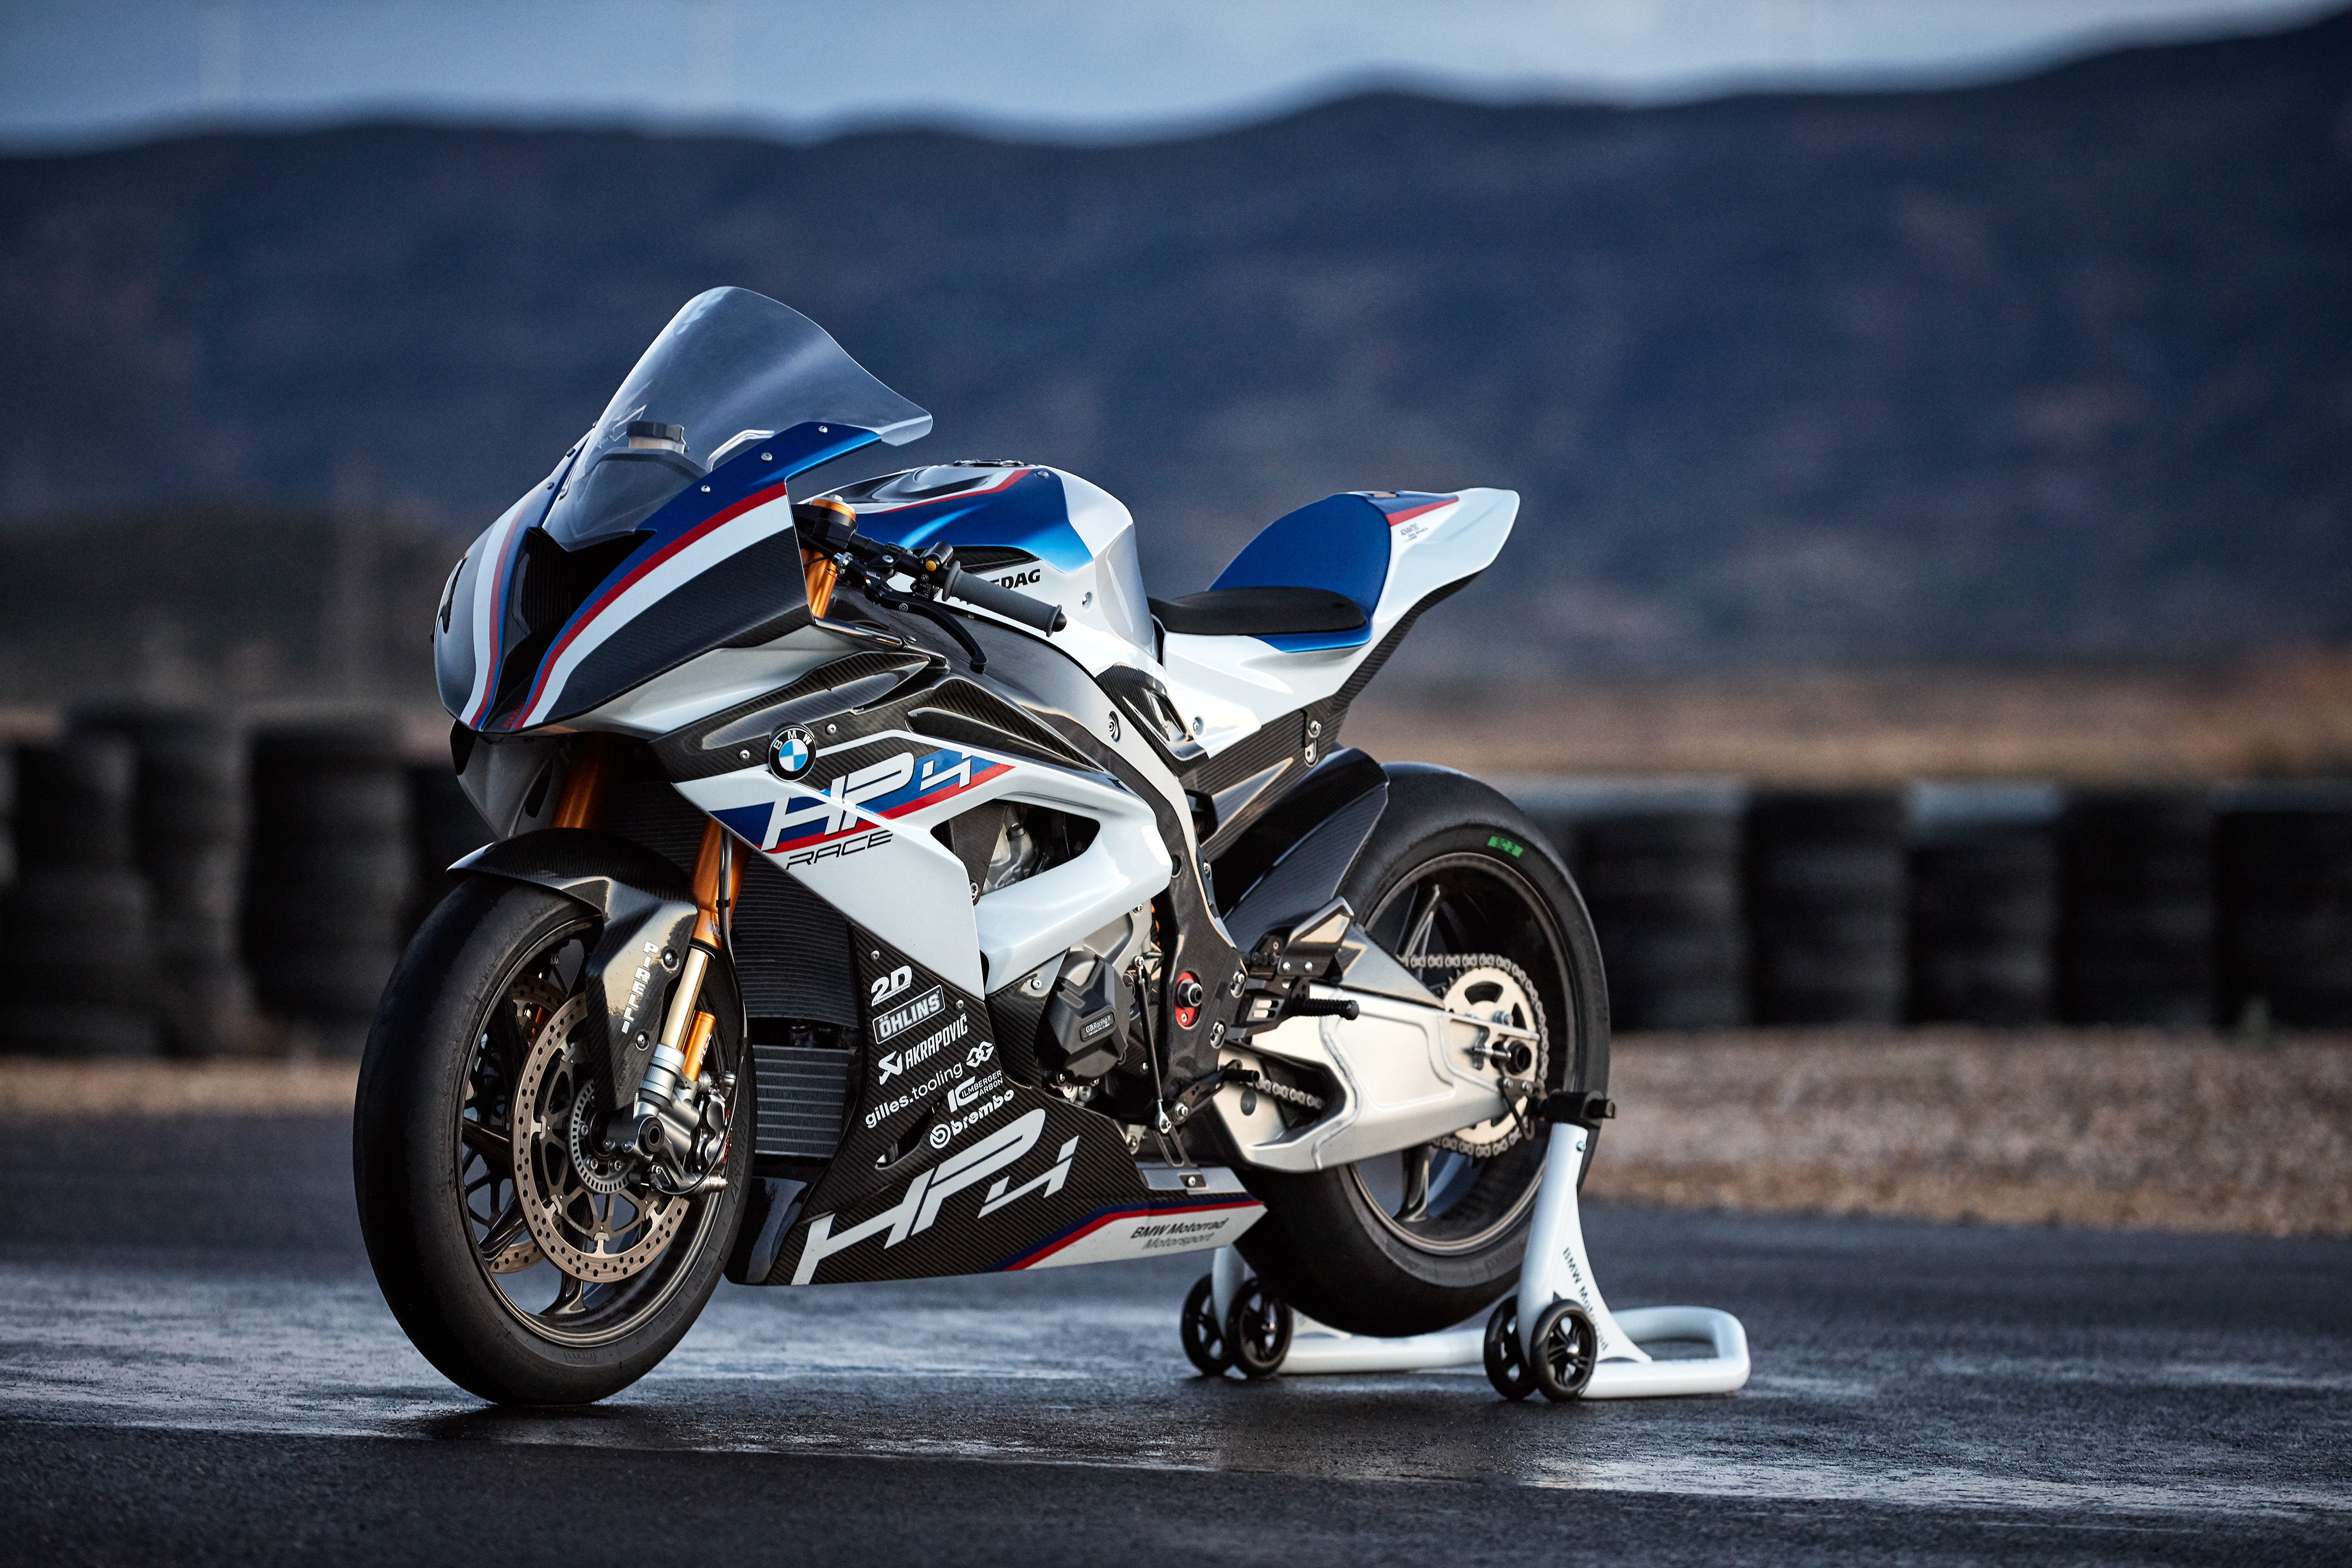 Bmw S1000rr For Sale >> Kawasaki H2R vs BMW HP4Race: Let the high-speed hostilities resume – The Bike Shed Times